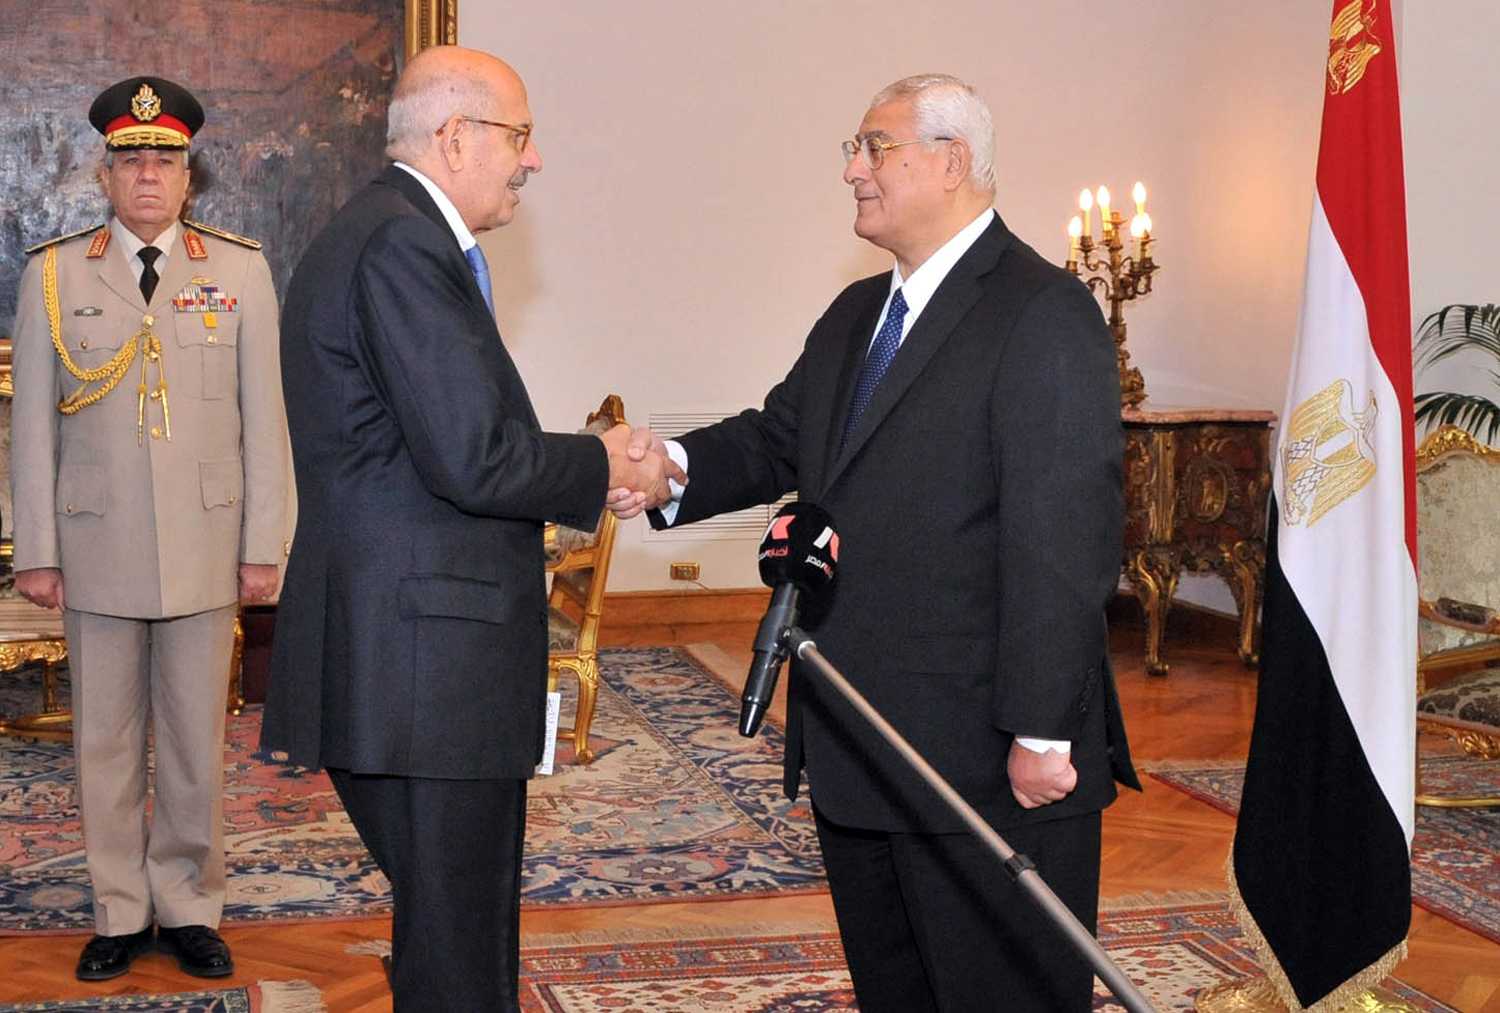 A handout picture released by the Egyptian Presidency shows Egyptian leader Mohamed ElBaradei (C) being sworn in as Egypt's interim vice president for foreign relations, in front of Egypt's interim president Adly Mansour (R), in Cairo on July 14, 2013. (AFP Photo)